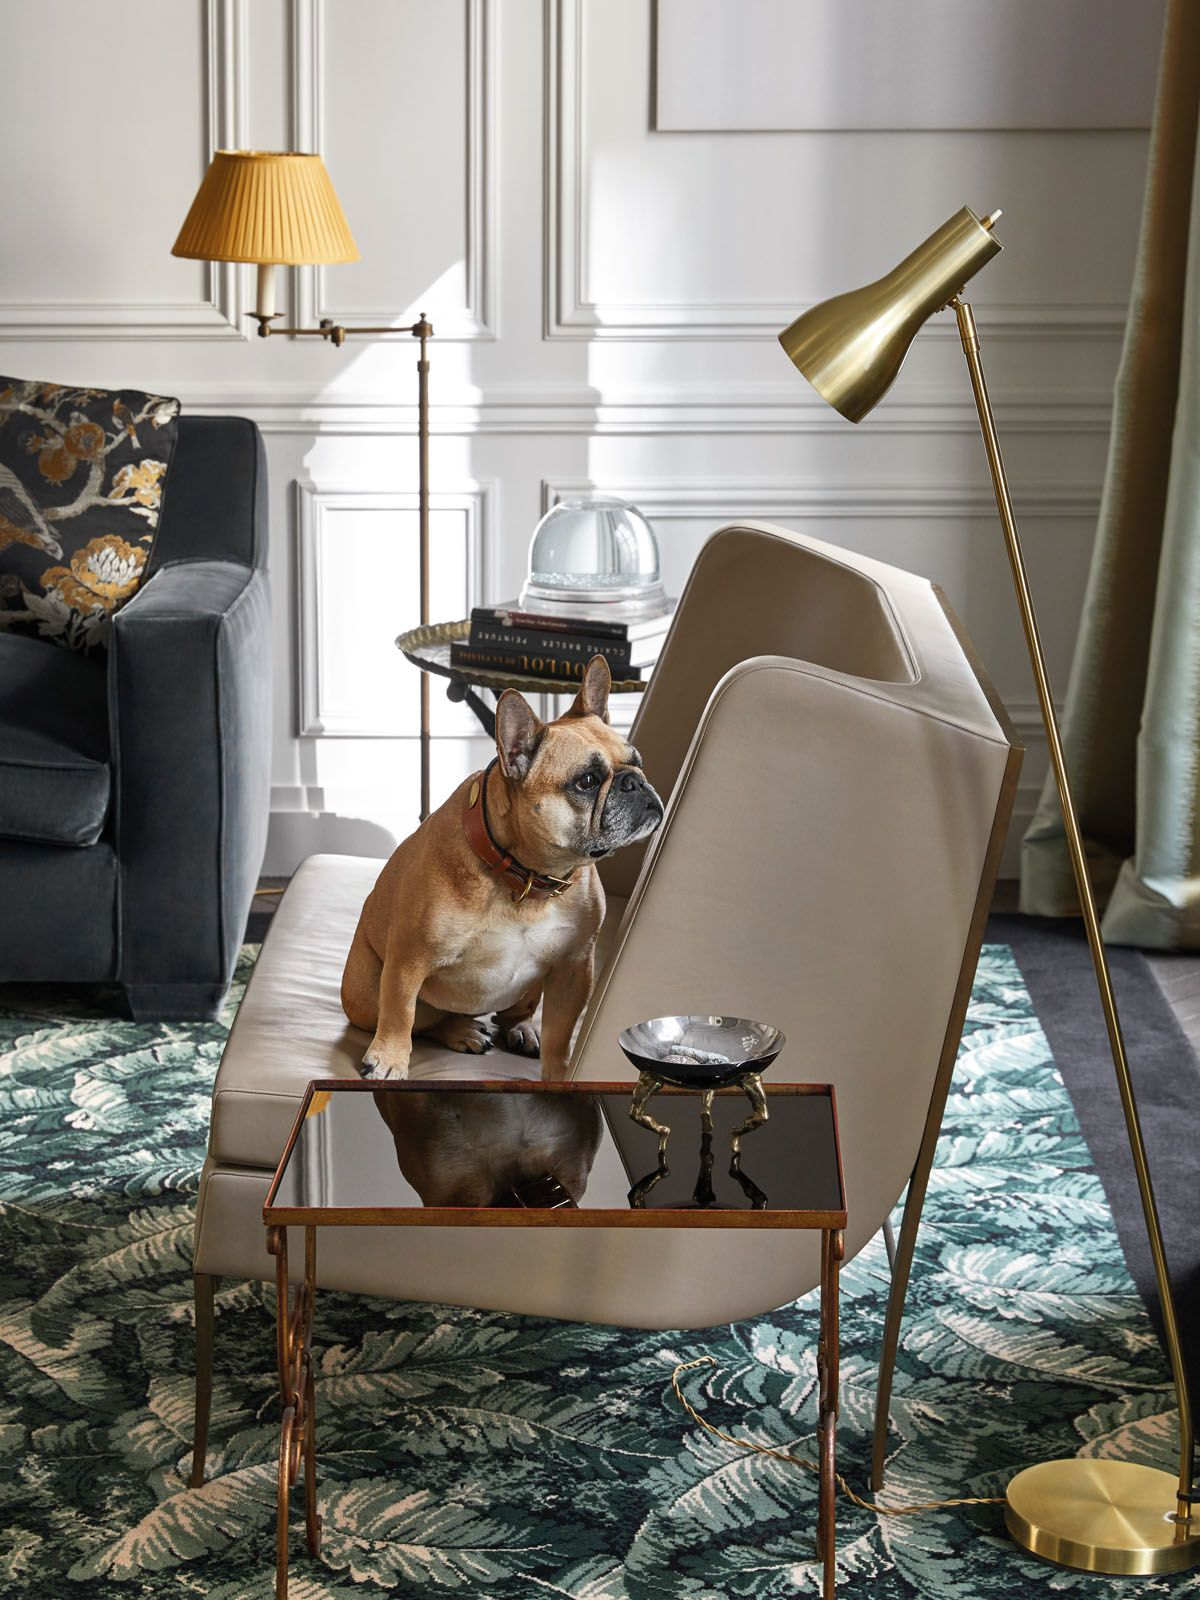 The family dog sits on an armchair in the living room